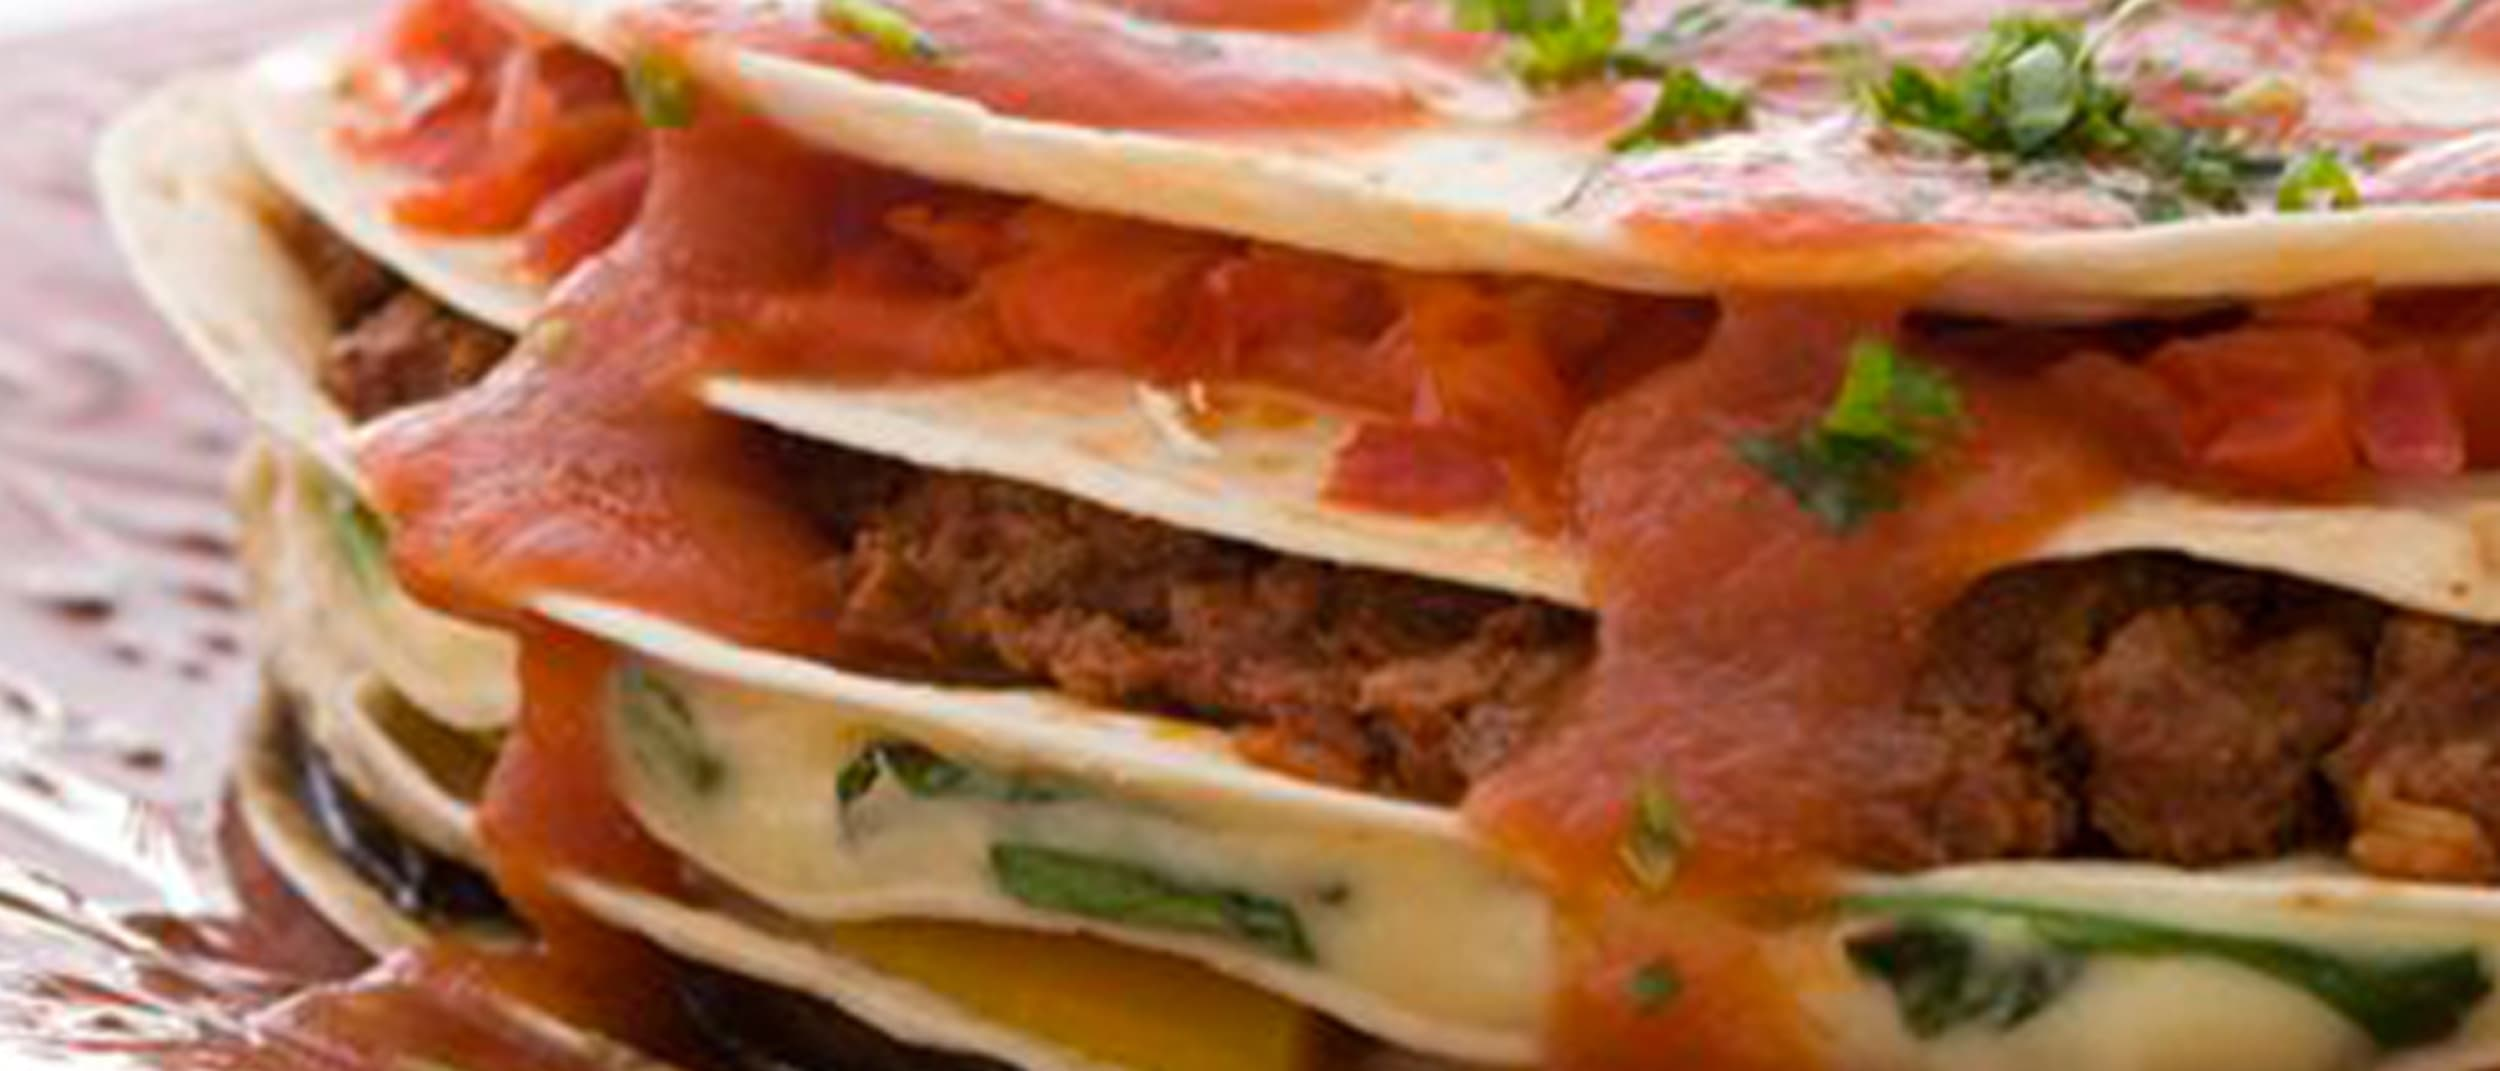 Tortilla Tower recipe from PAK'nSAVE